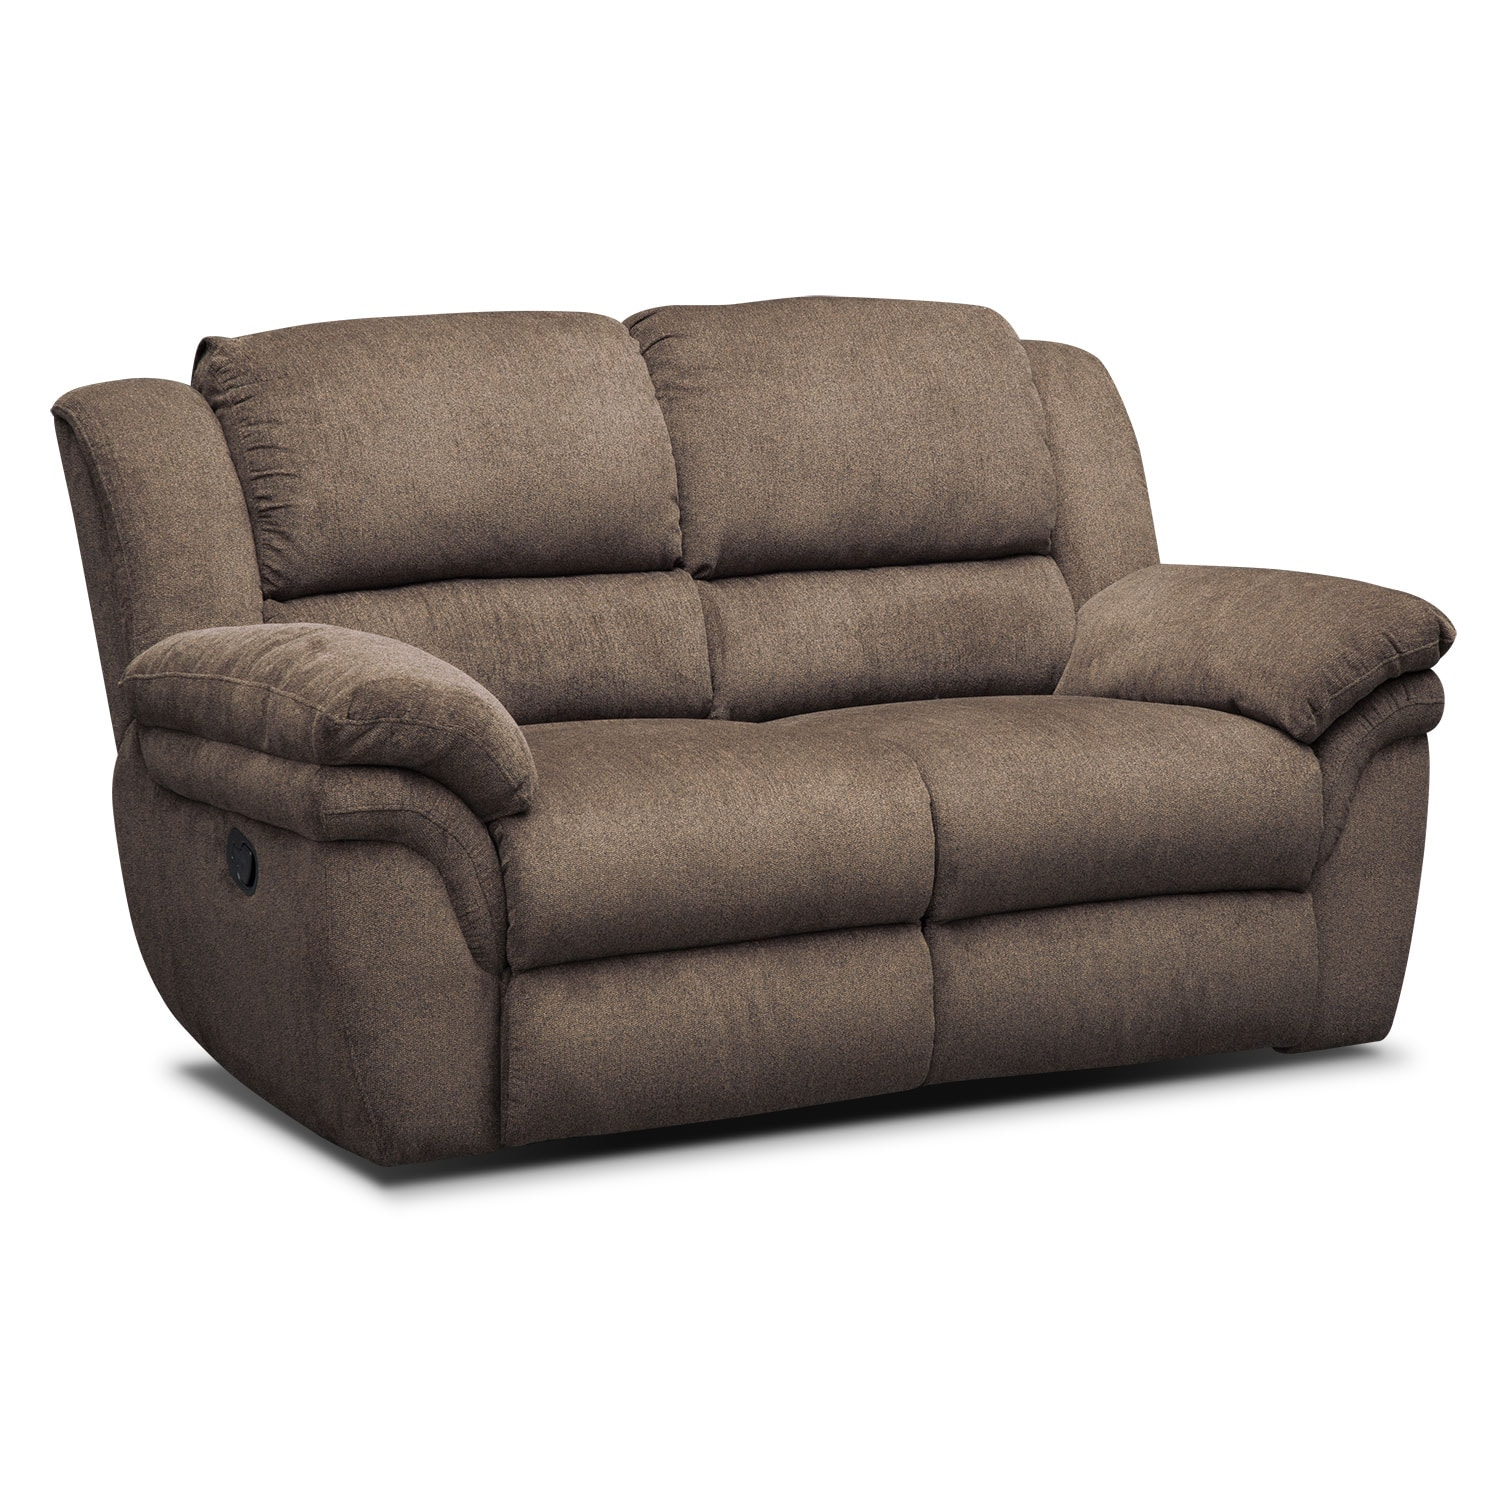 power reclining sofa vs manual sofa review. Black Bedroom Furniture Sets. Home Design Ideas